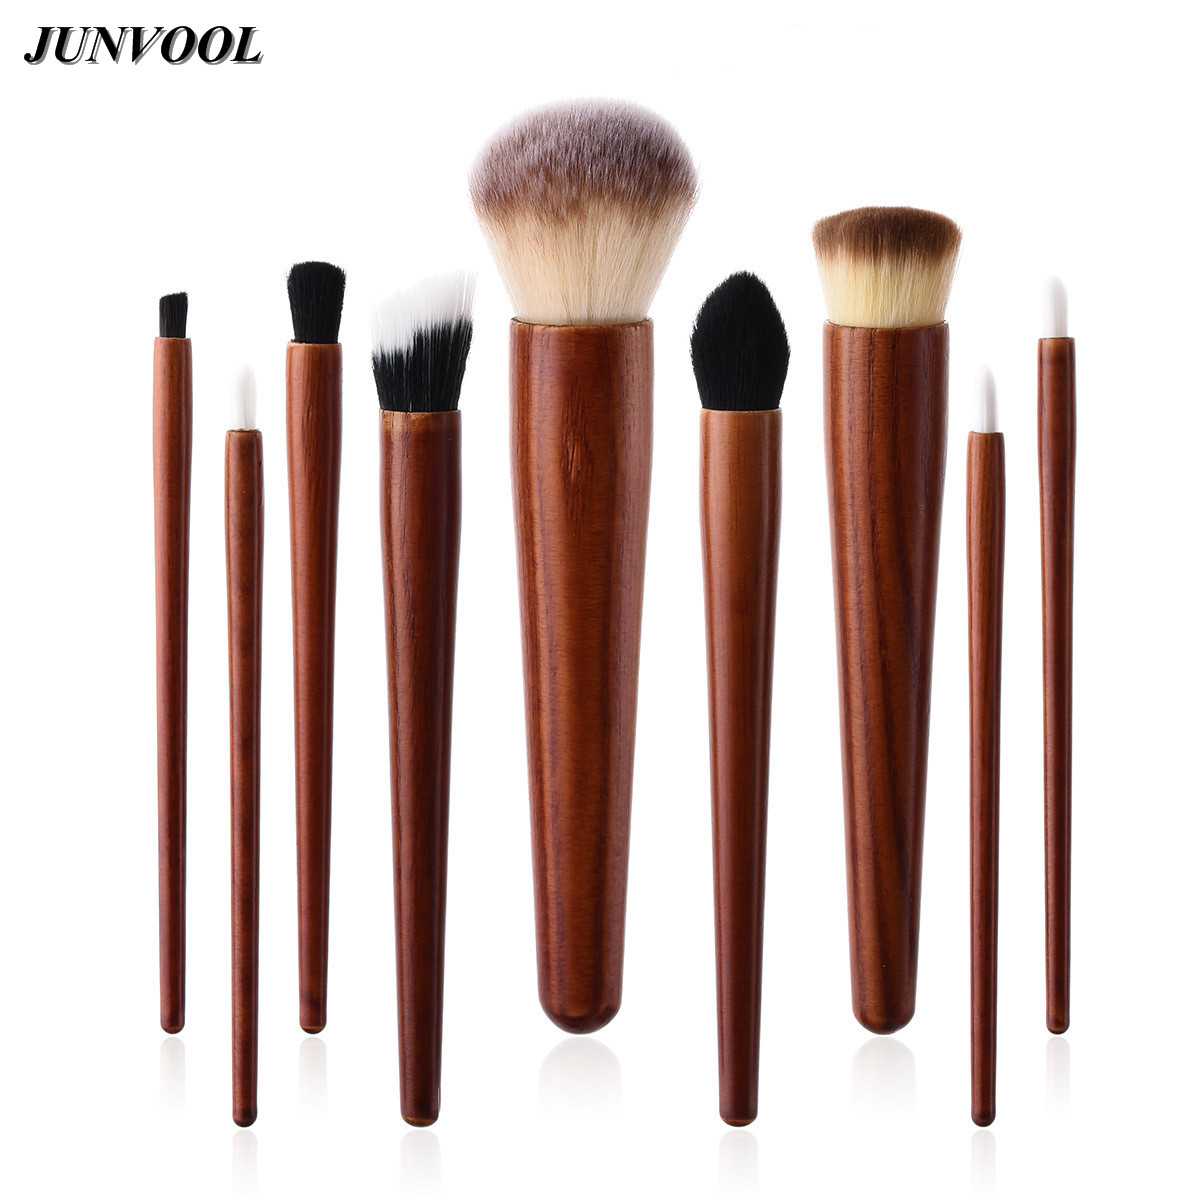 9Pcs/set Cosmetic Makeup Brushes Wood Handle Foundation Power Eye Shadow Brow Concealer Blending Contour Beauty Brush Tools Kits ноутбук hp 15 bw536ur 2gf36ea